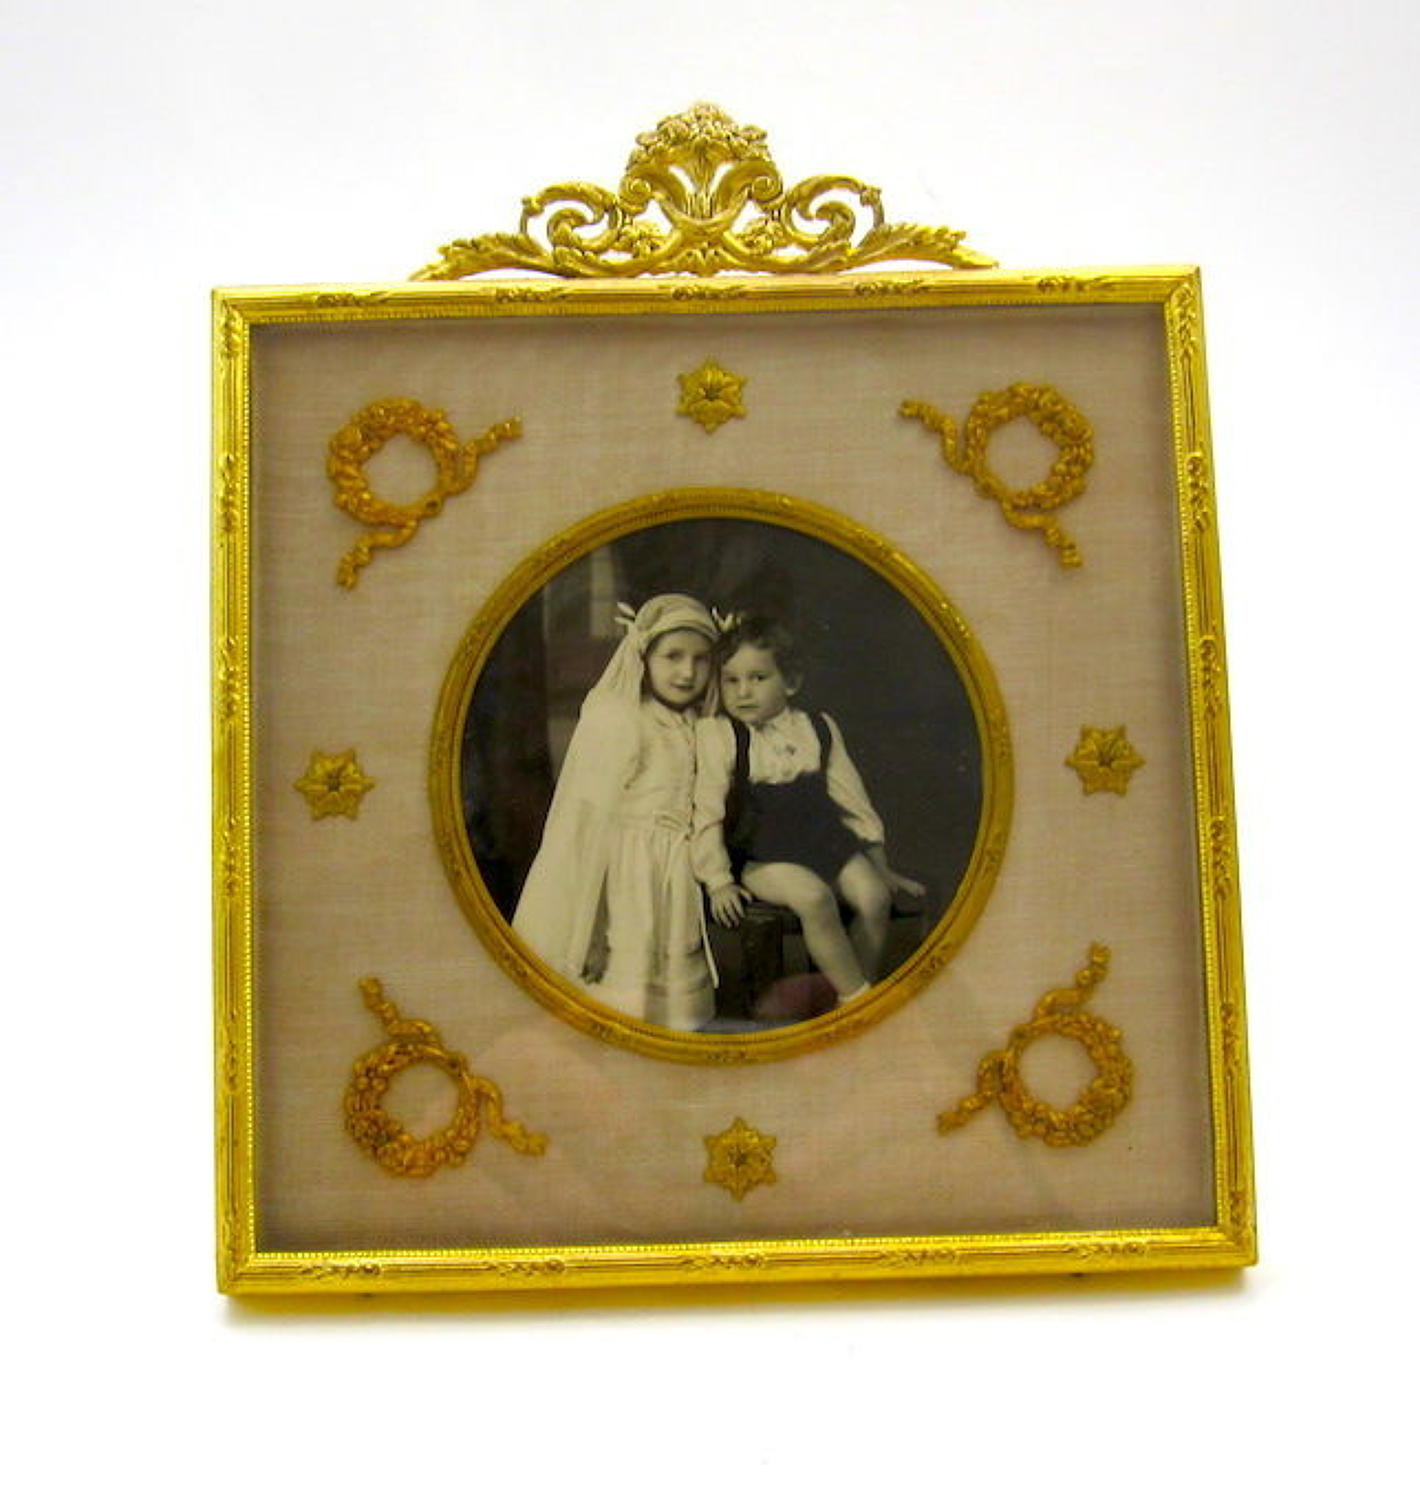 Antique French Empire Dore Bronze Frame with Classical Motifs